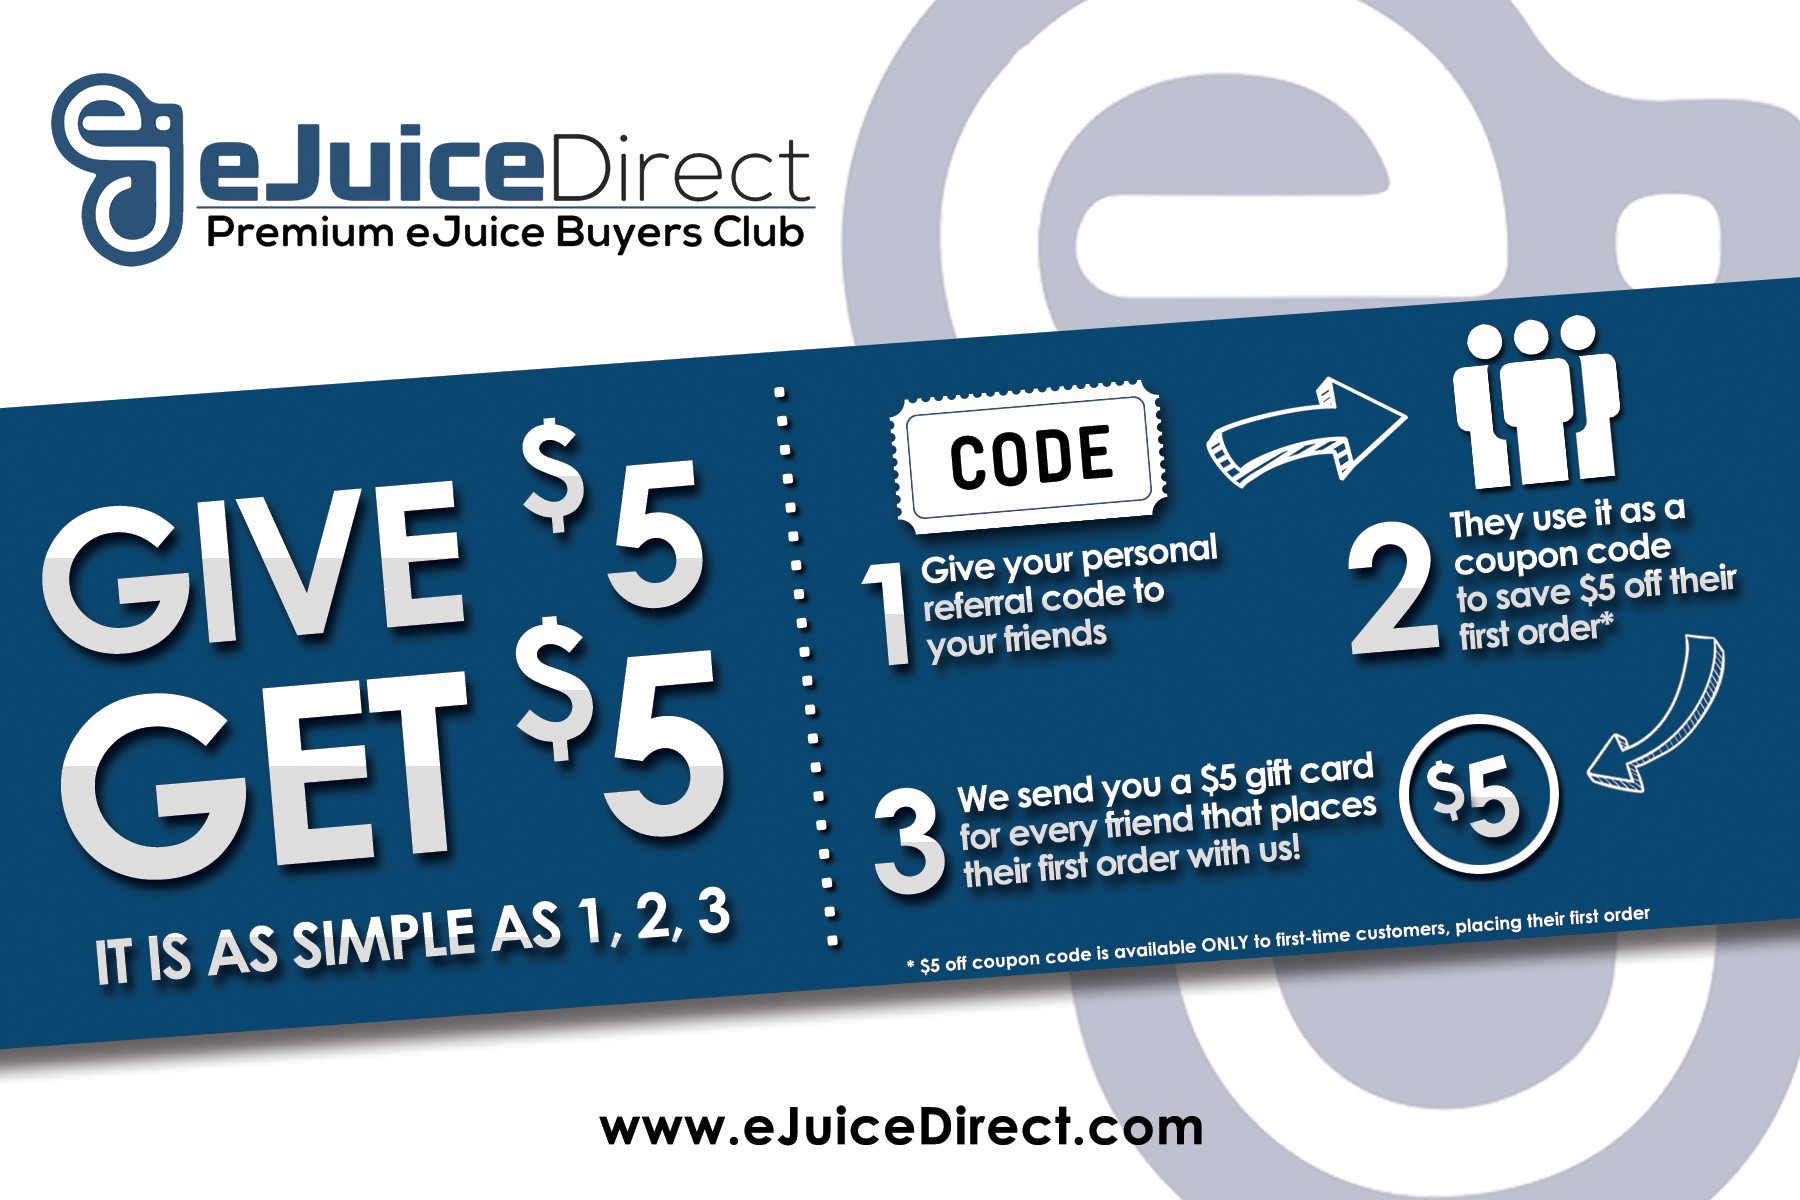 Create a referral program, marketing insert for eJuiceDirect